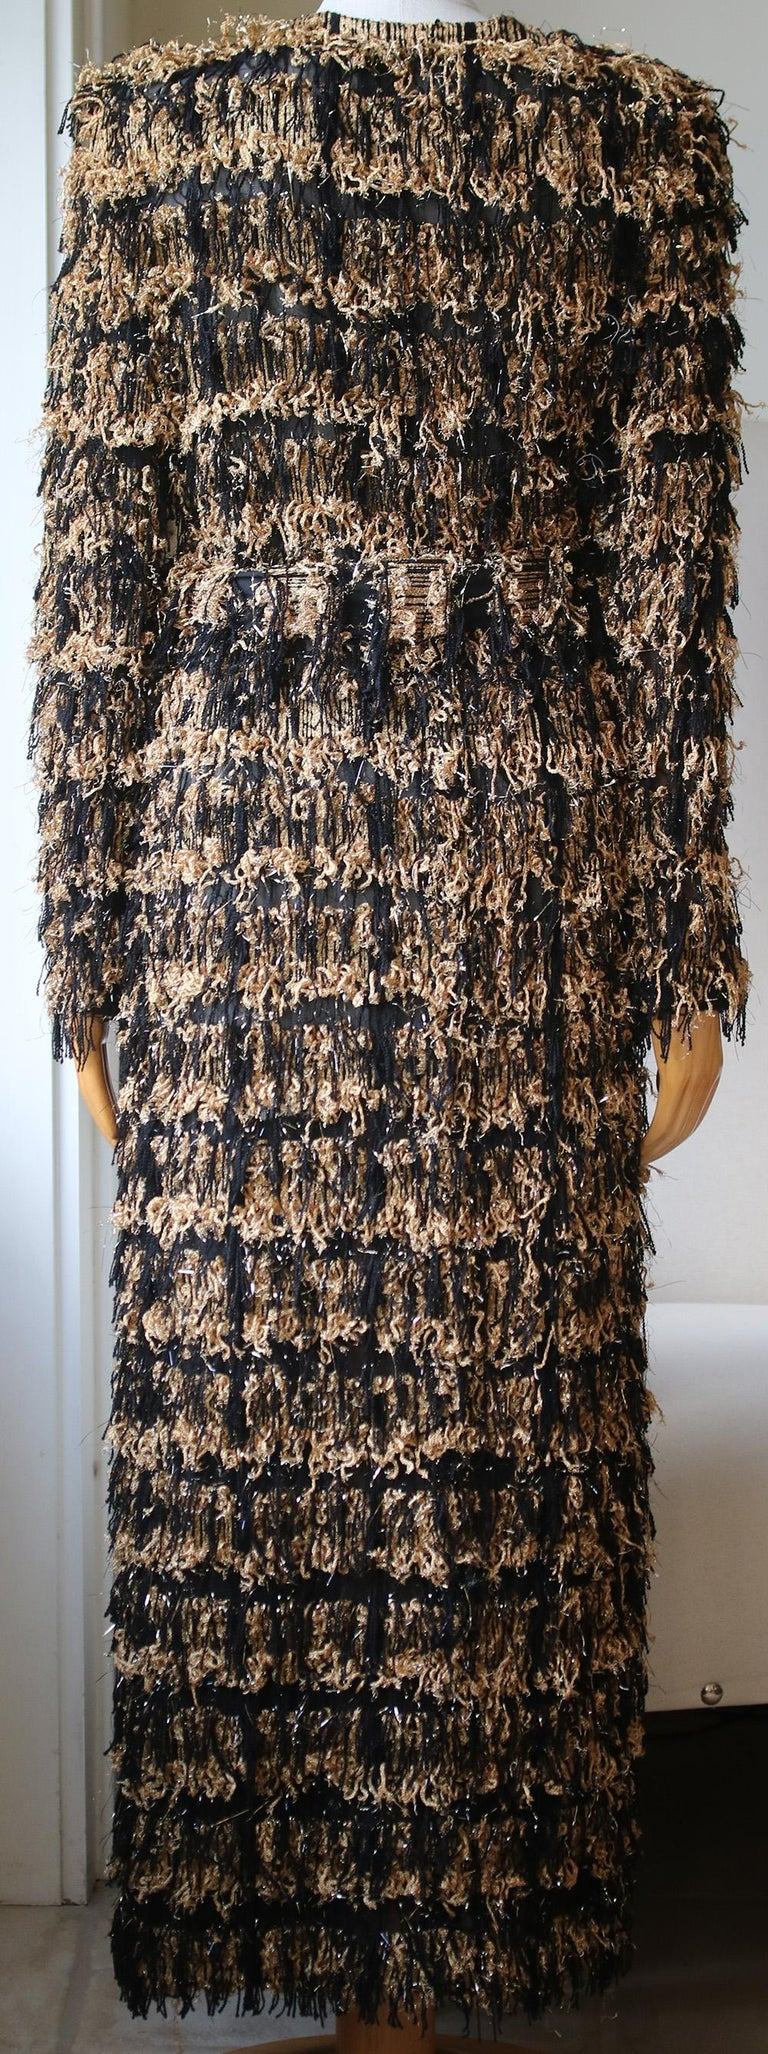 Balmain Metallic Tweed Fringe Long Cardigan In Excellent Condition For Sale In London, GB